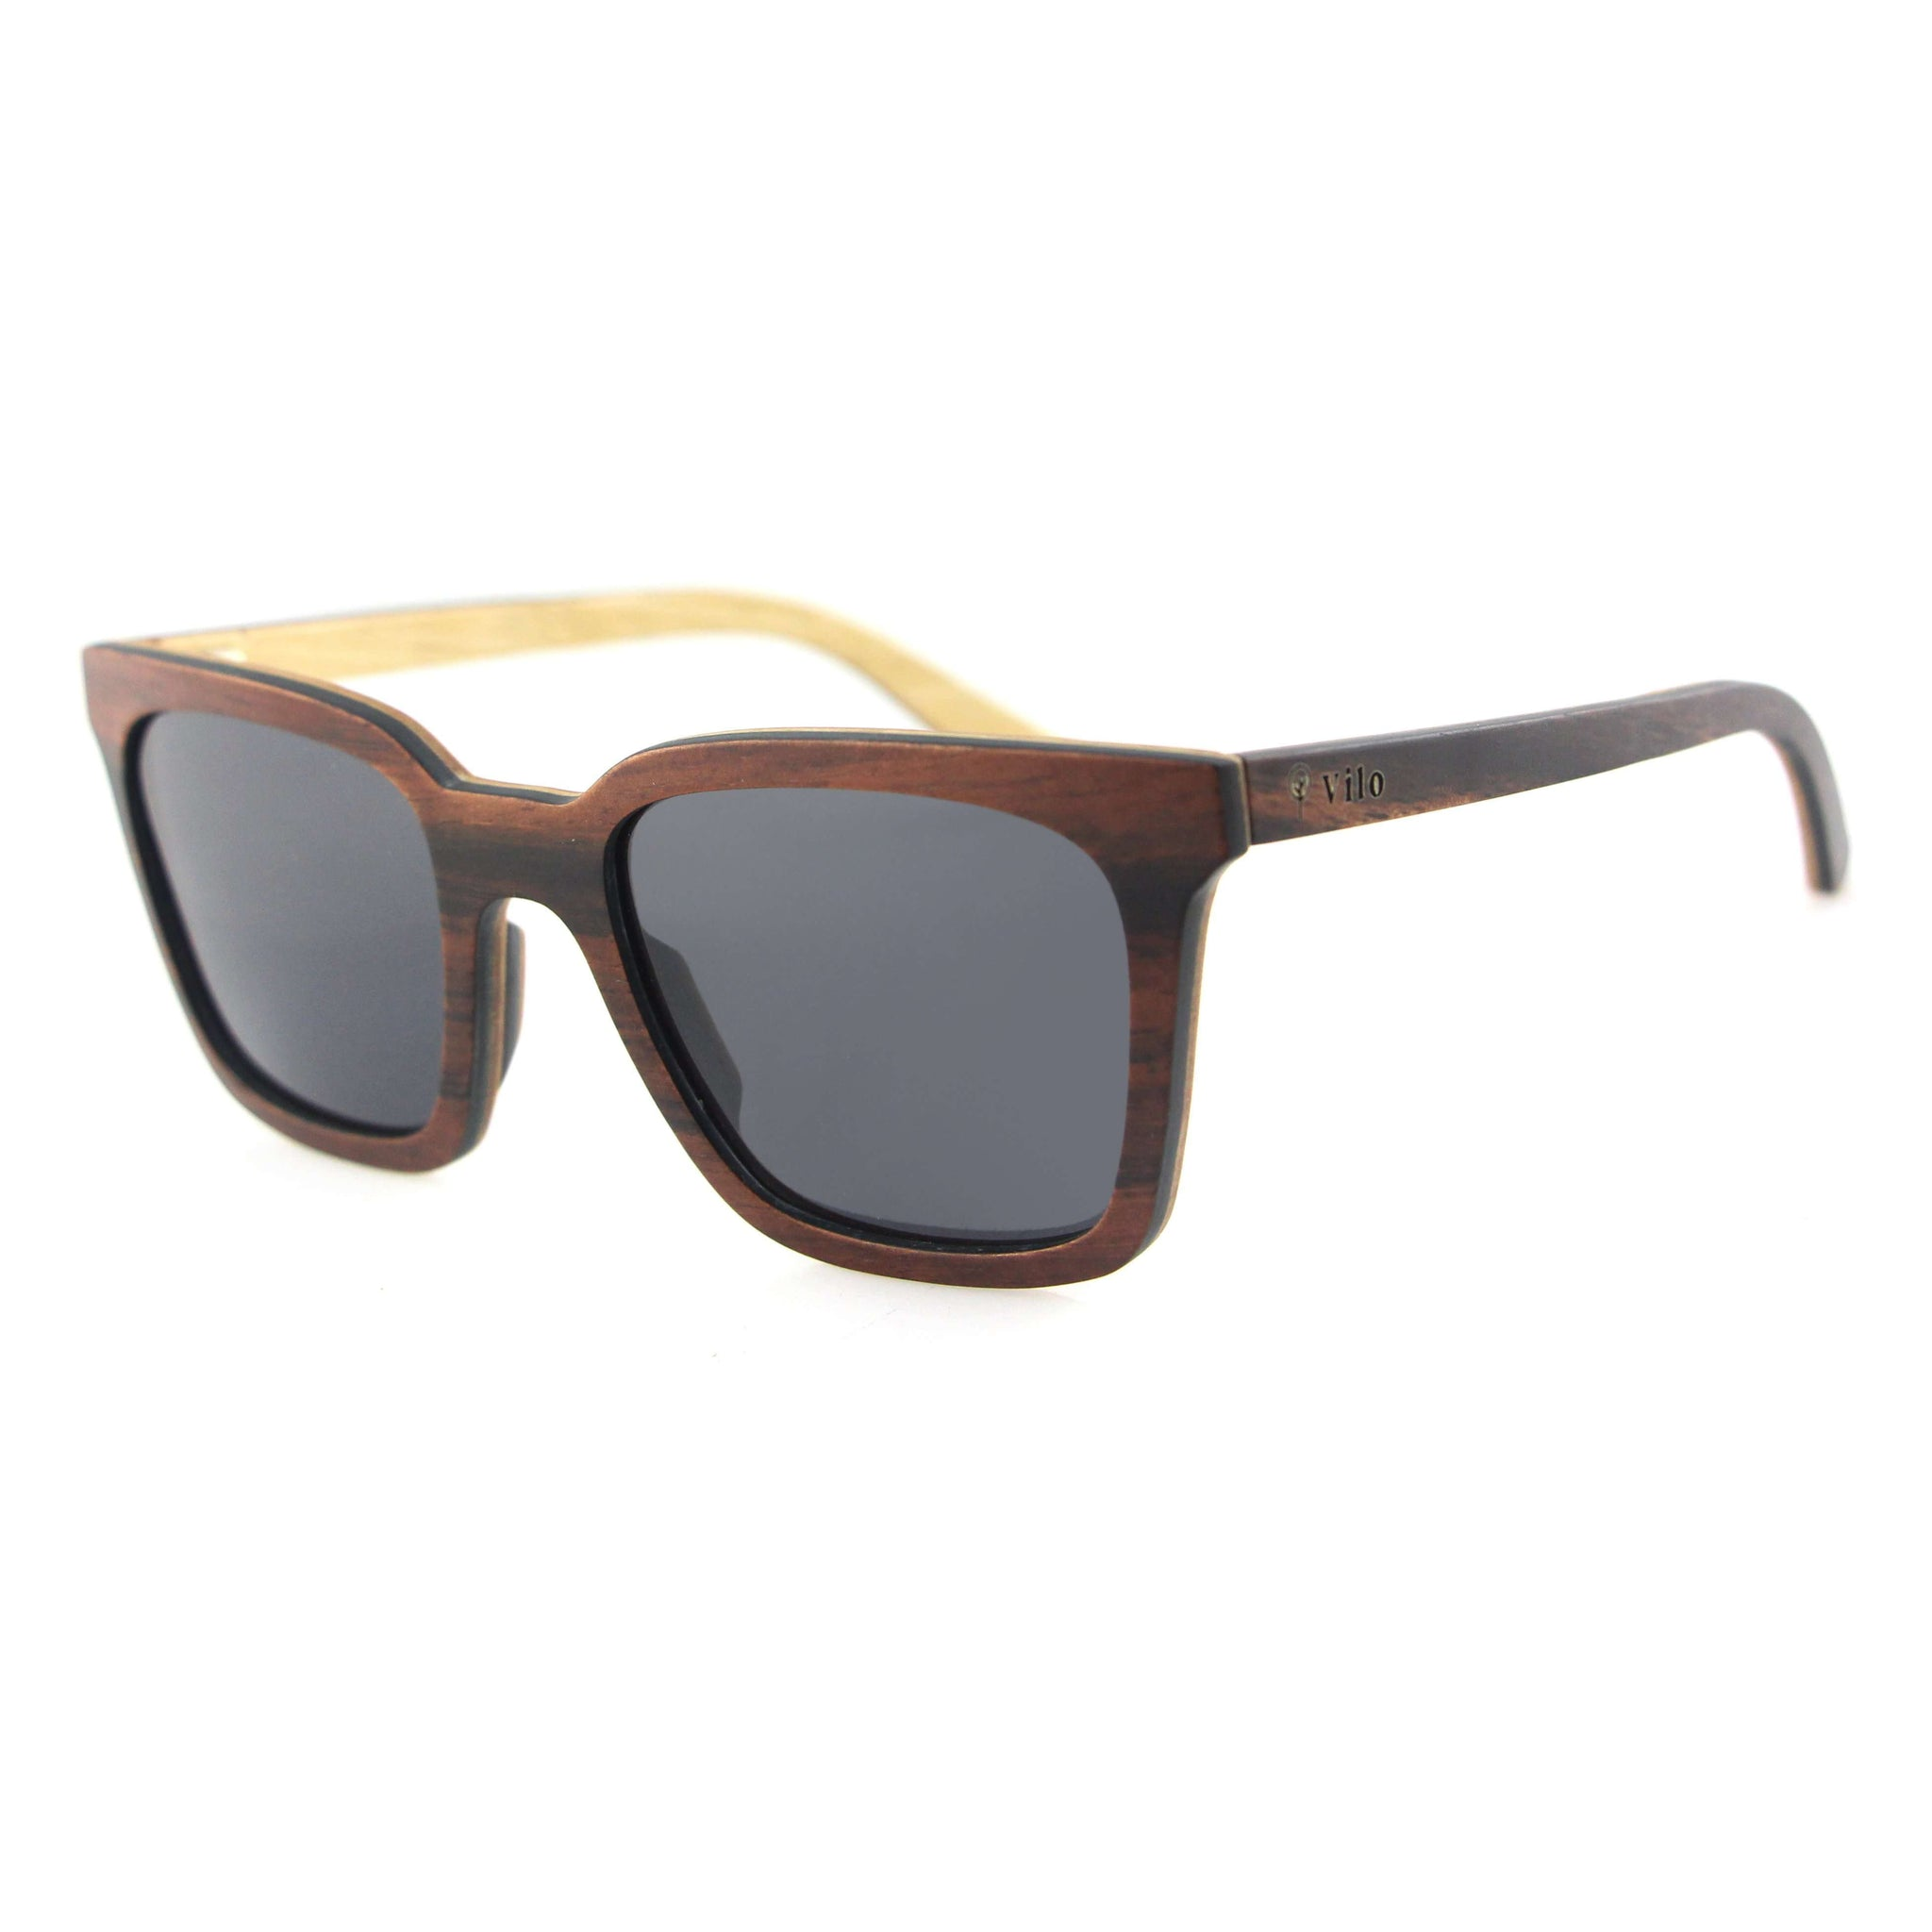 Vilo Wooden Sunglasses - Zephyr: